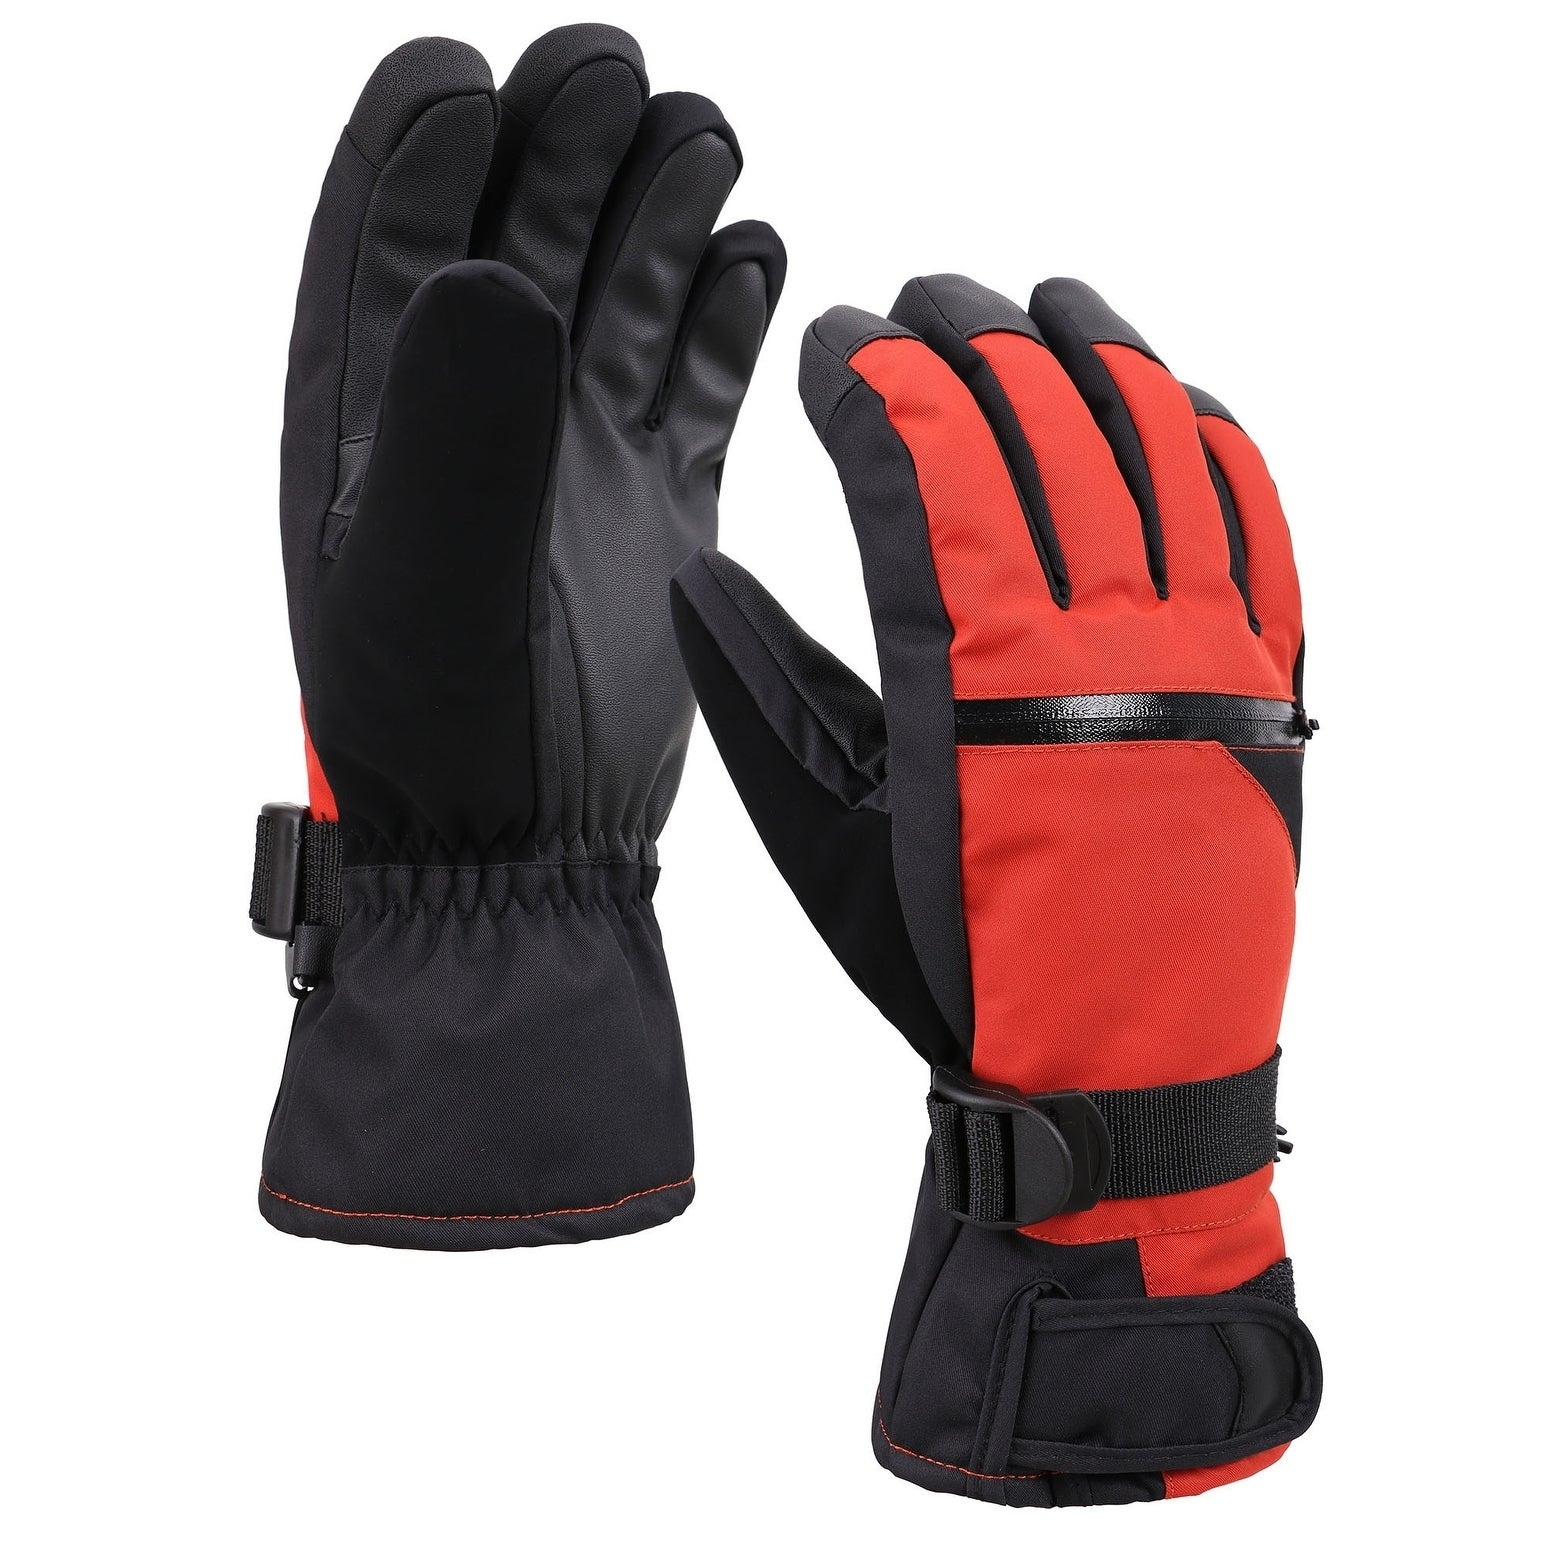 d3b2cf14e239b Shop Men's Classic Touchscreen Ski Glove w/Horizontal Zippered Pocket - On  Sale - Free Shipping On Orders Over $45 - Overstock - 19575058